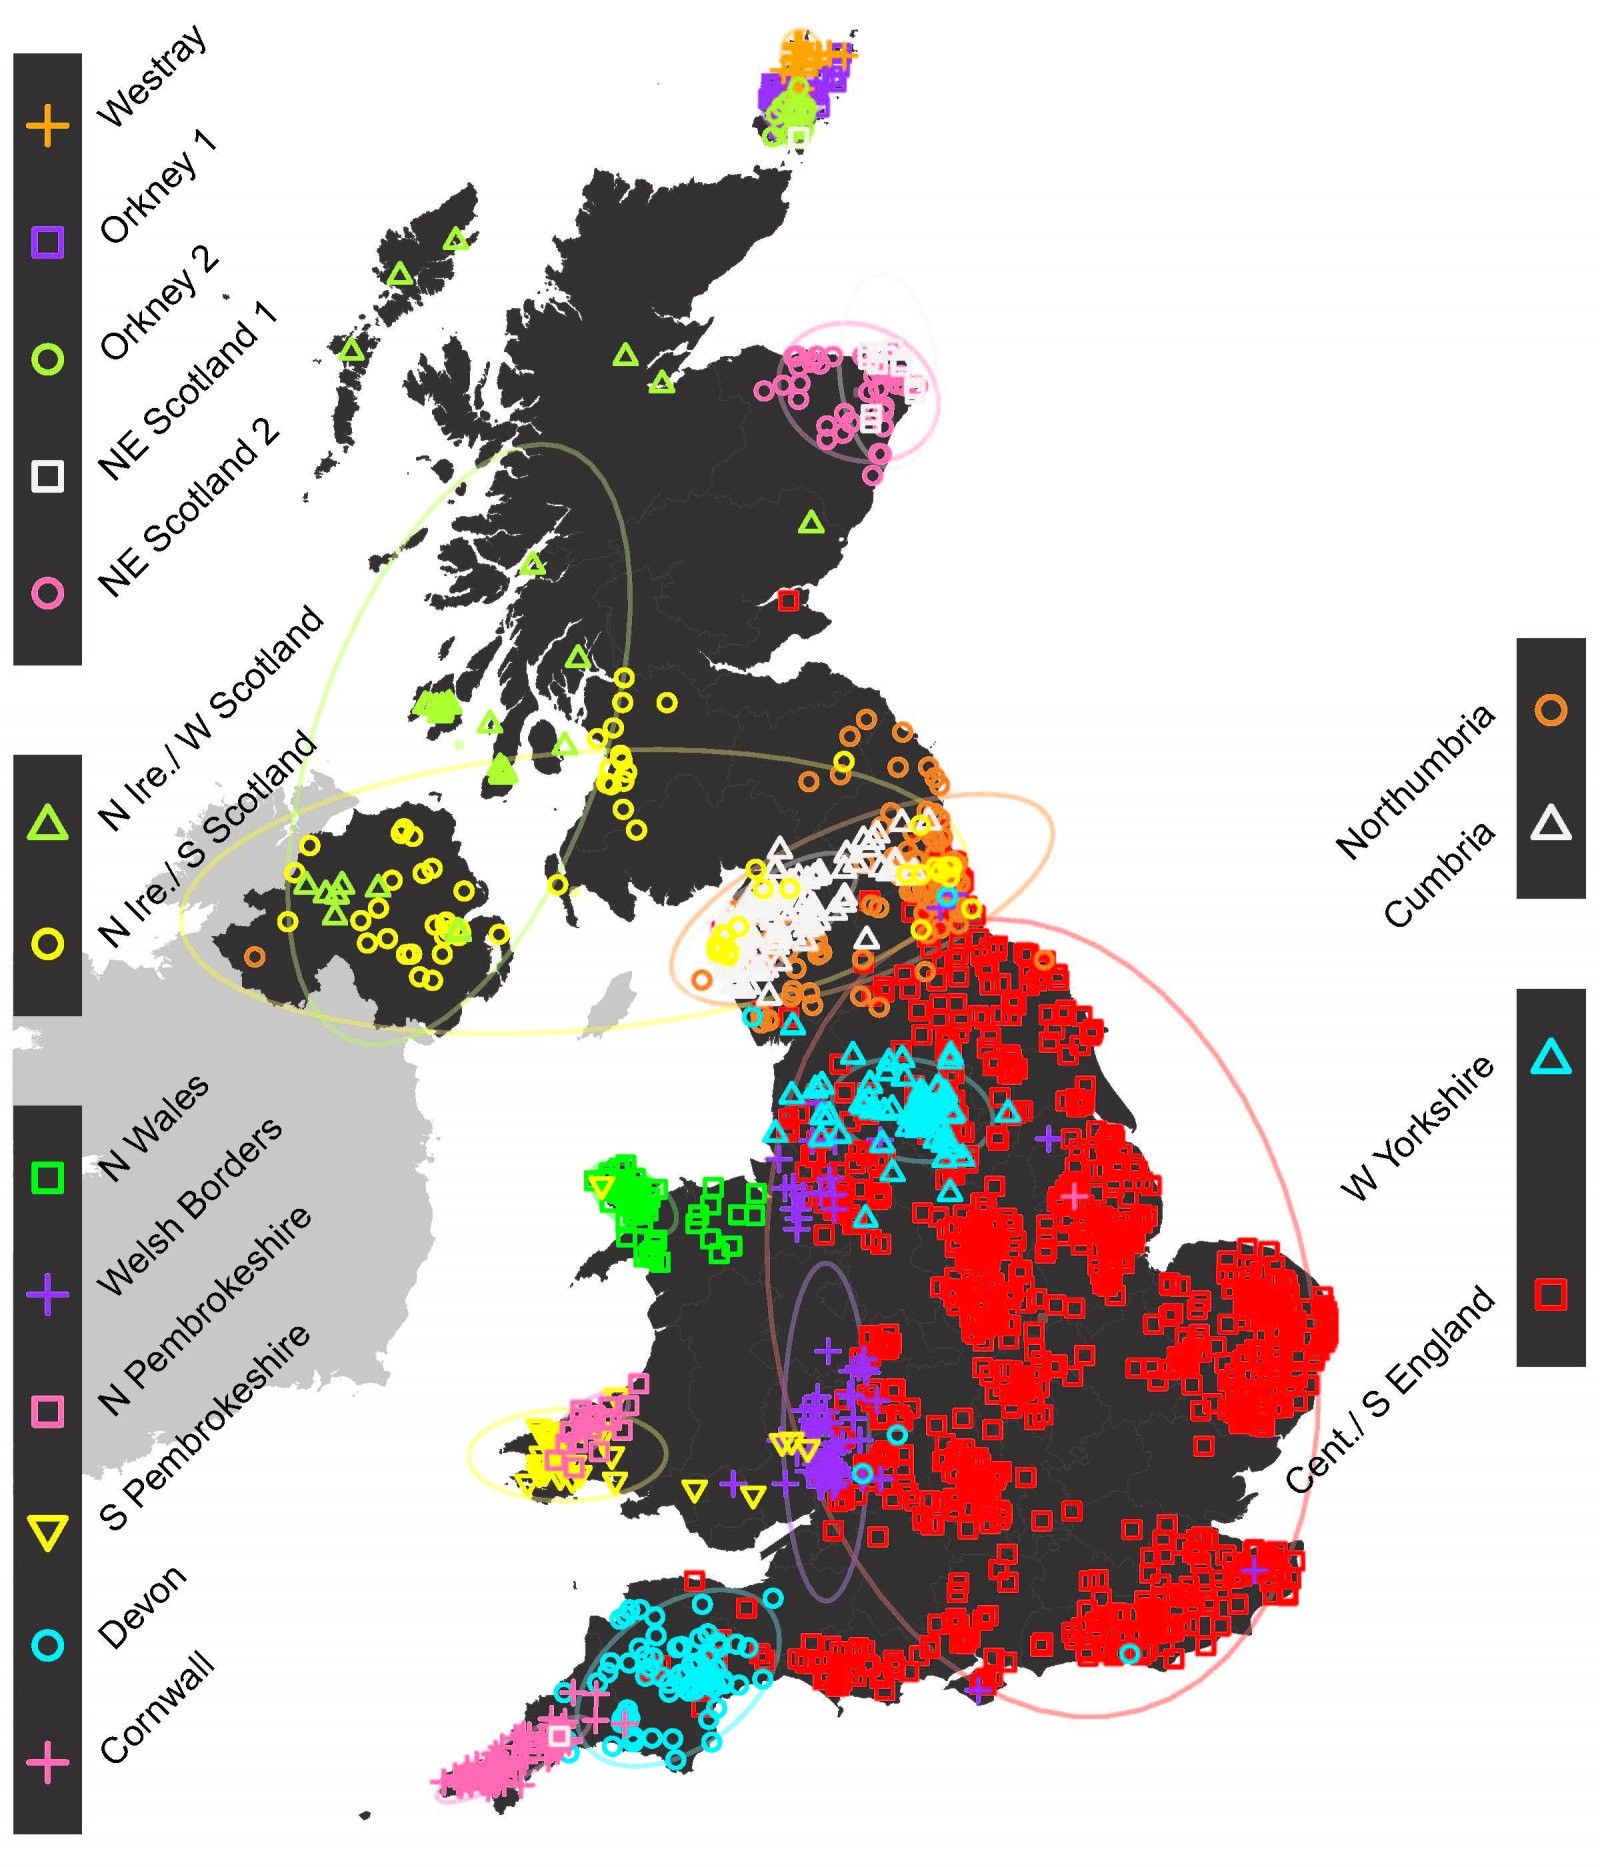 genetic map of british isles